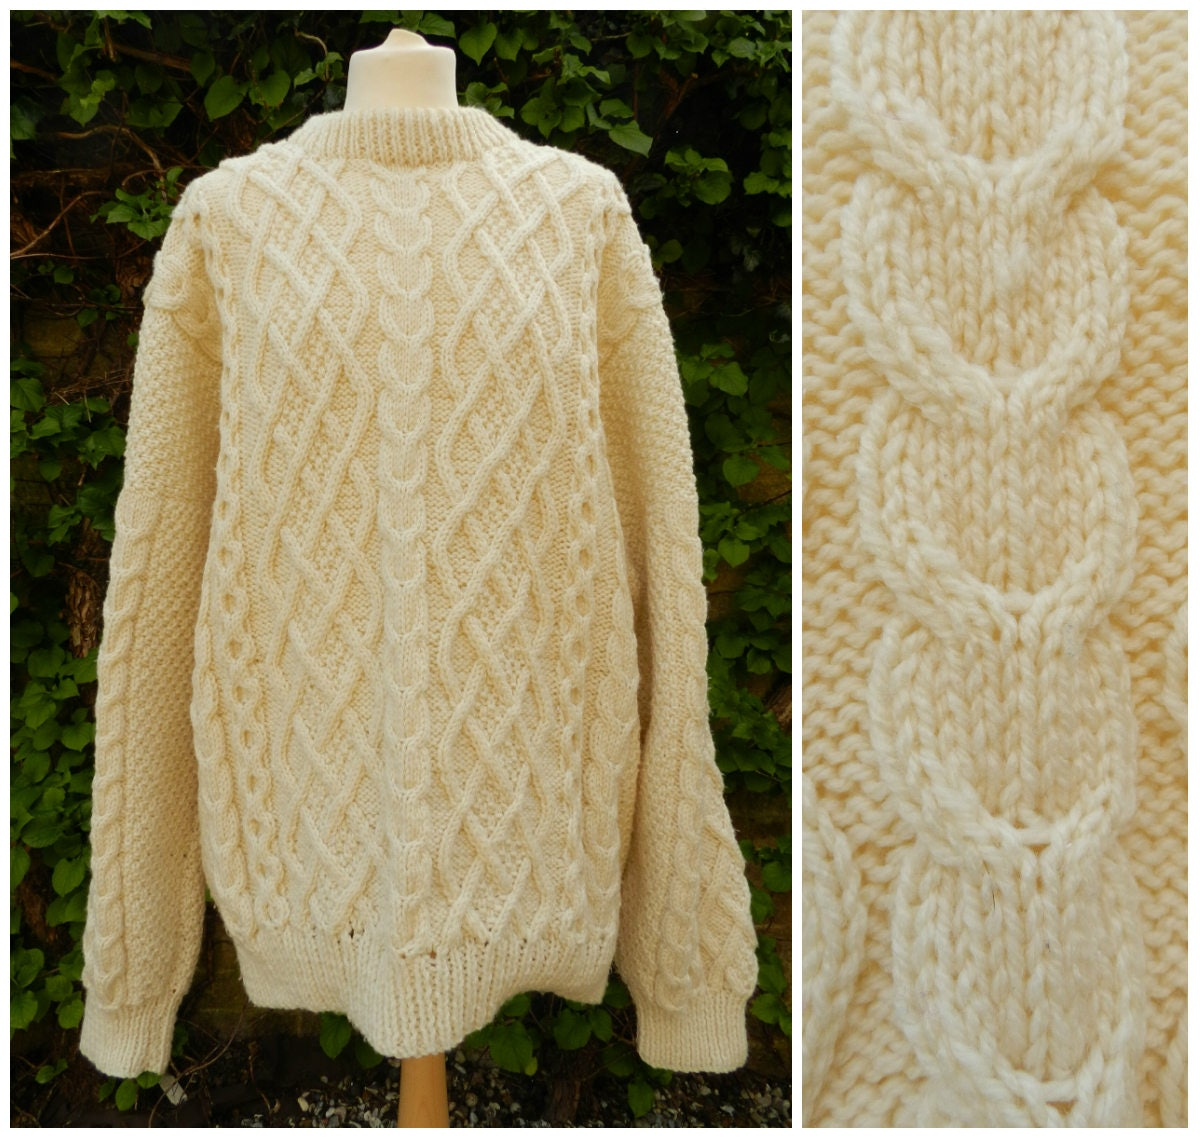 70s 80s cream chunky oversized acrylic HAND knitted crew neck cable knit fishermans sweater jumper L  XL  XXL